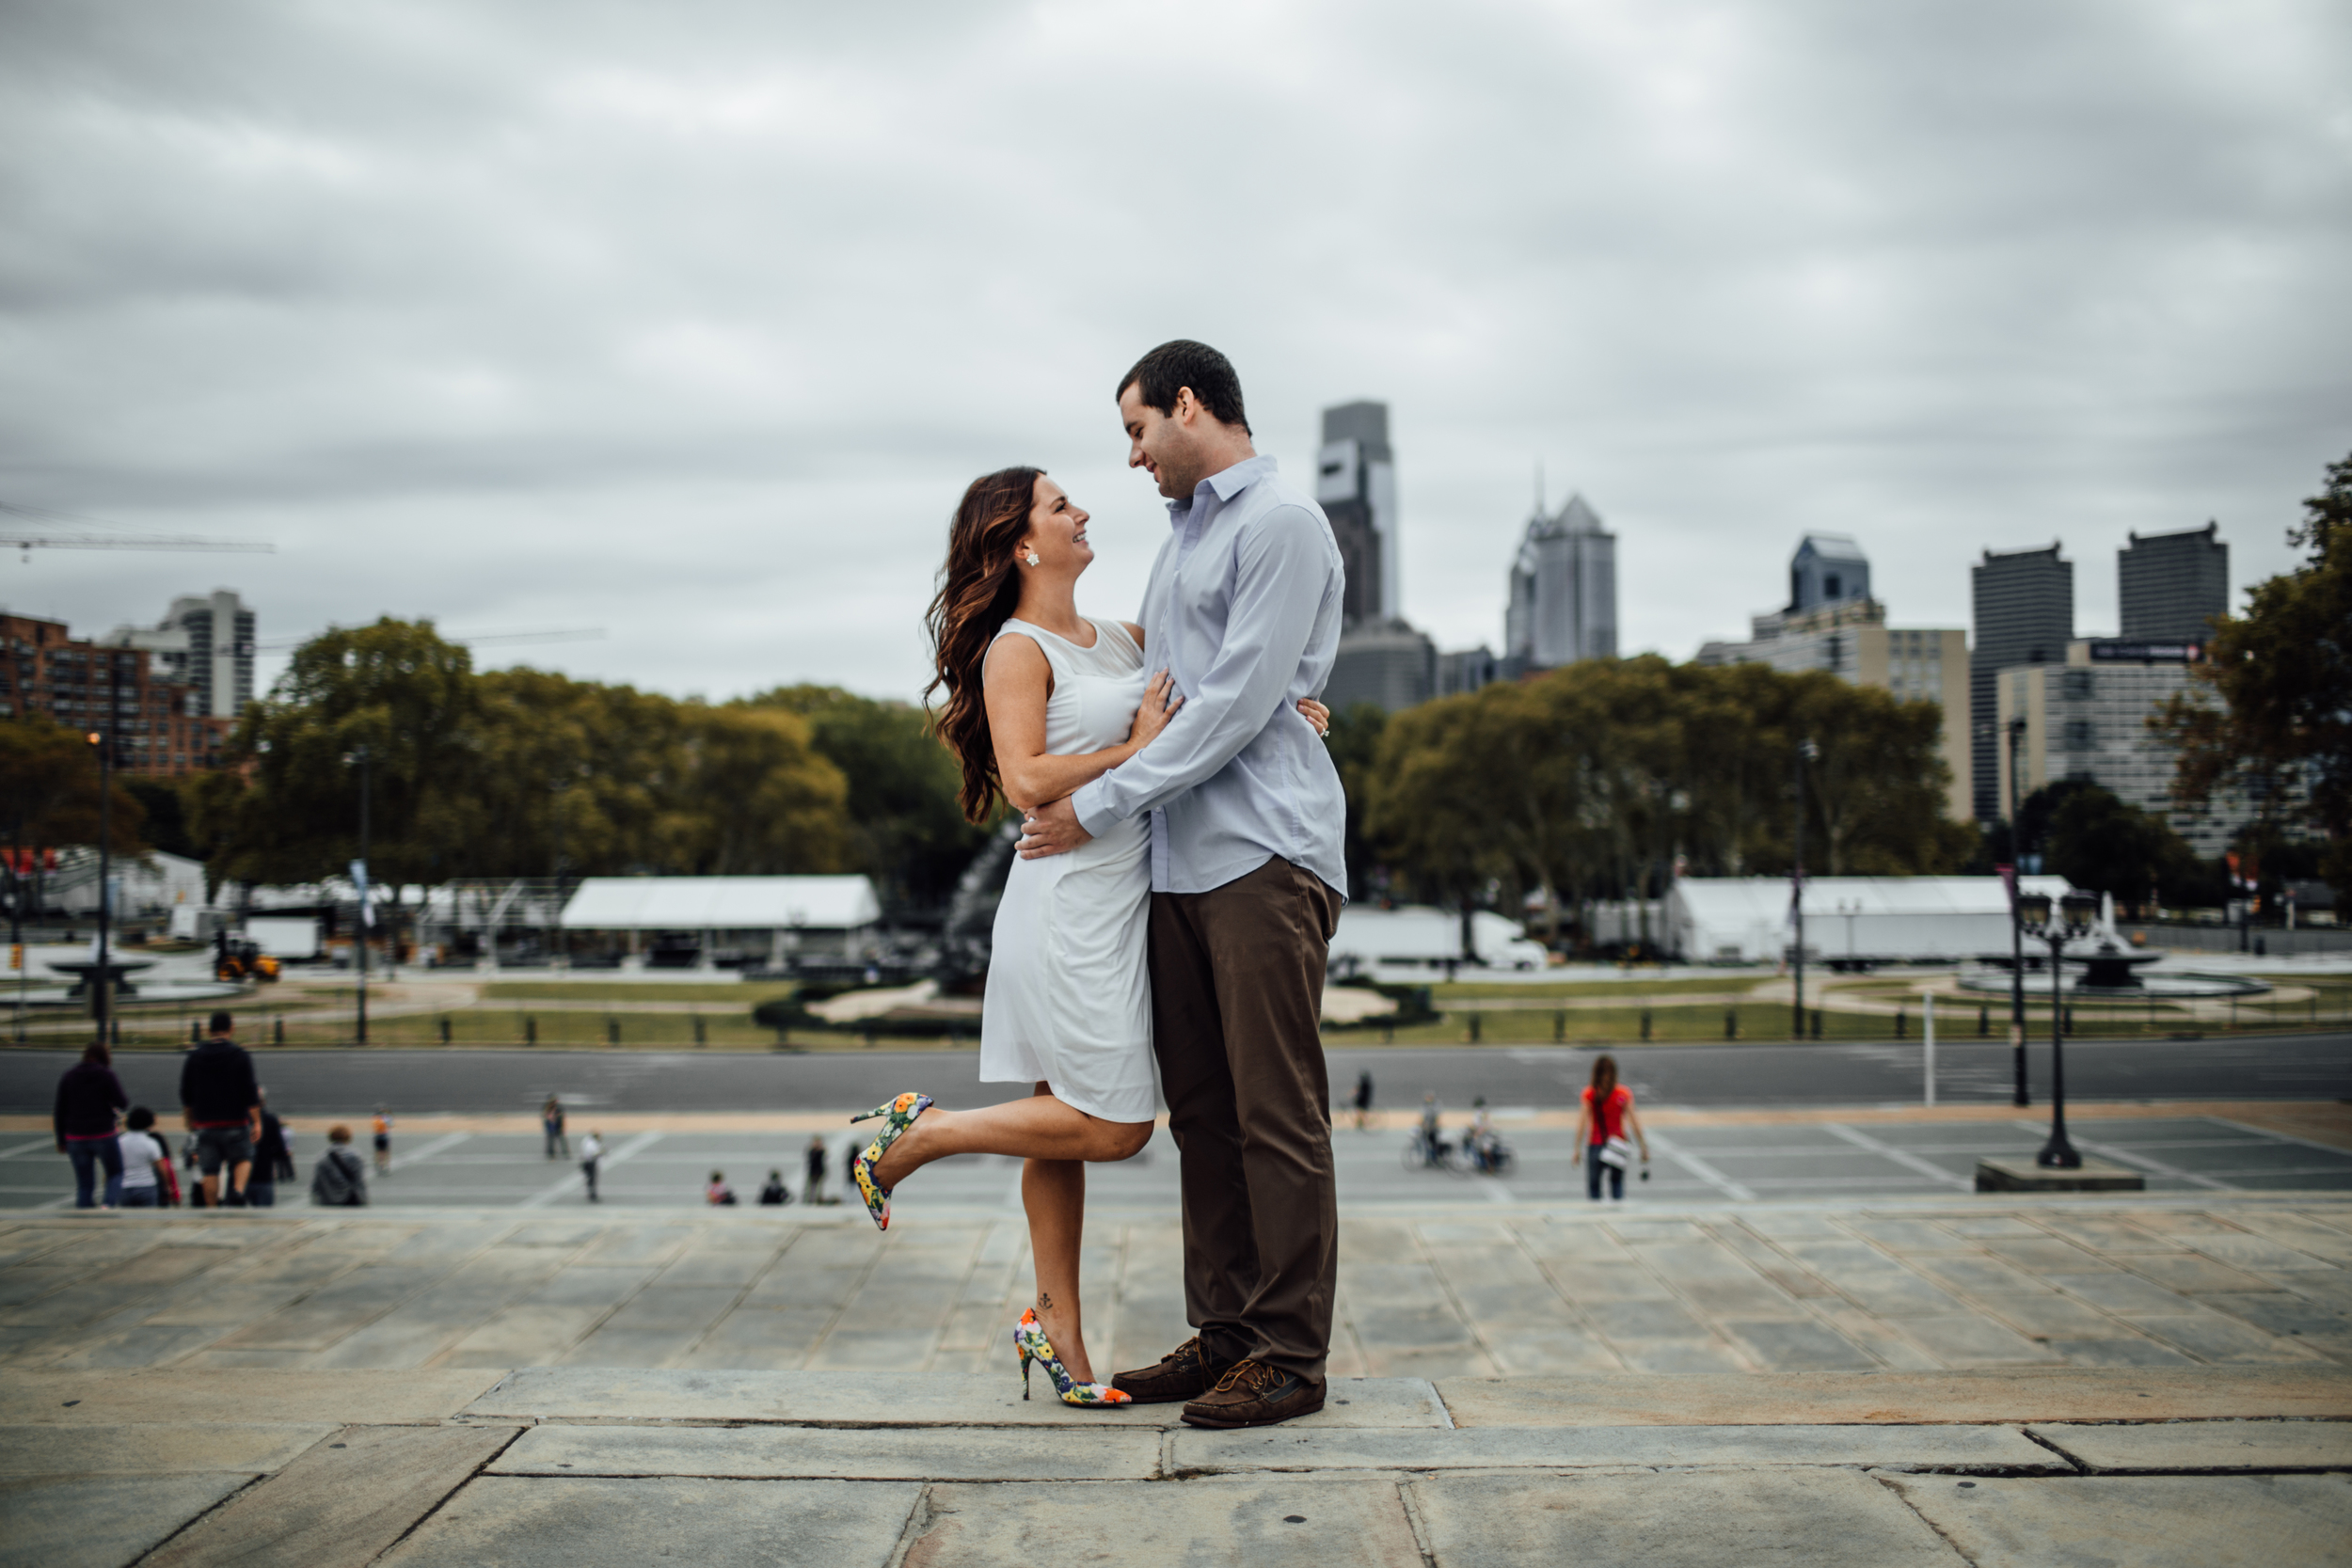 BRITTANYandKEVIN-Engagement2015 (100 of 115).jpg